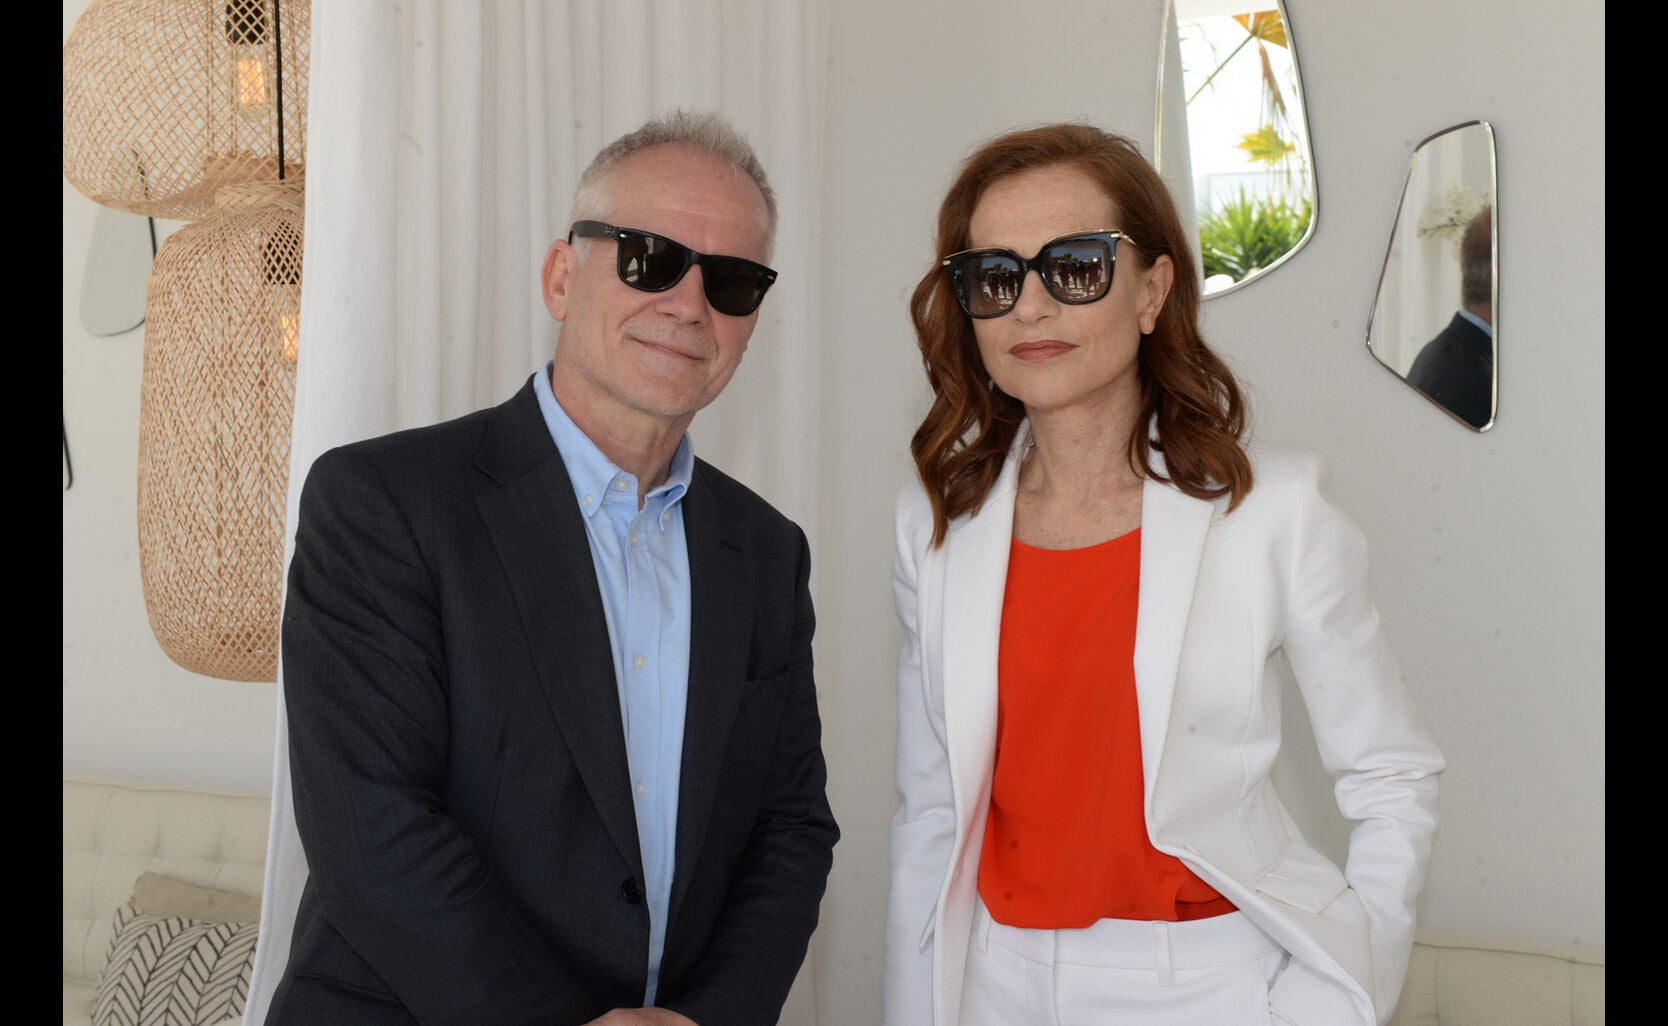 Cannes Film Festival director Thierry Frema and Isabelle Huppert